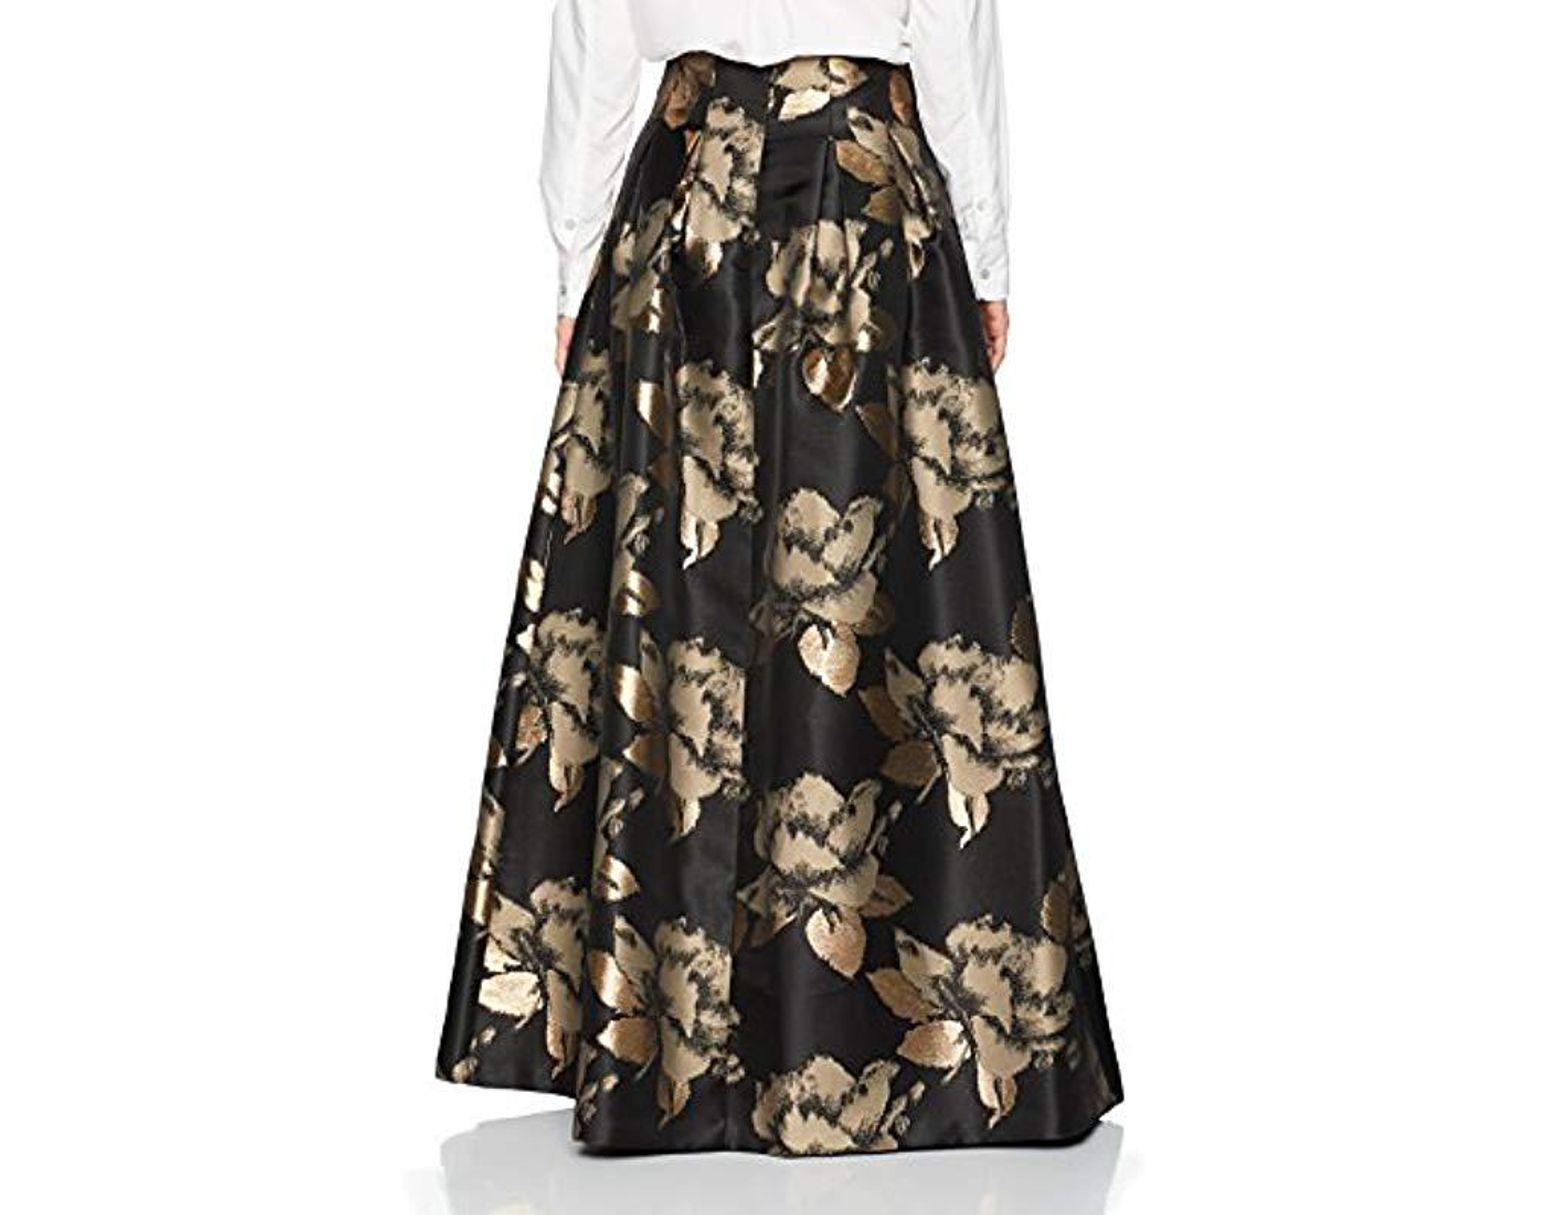 fb7576a79 Eliza J Separate Ballgown Skirt In Floral Print in Black - Save 57% - Lyst